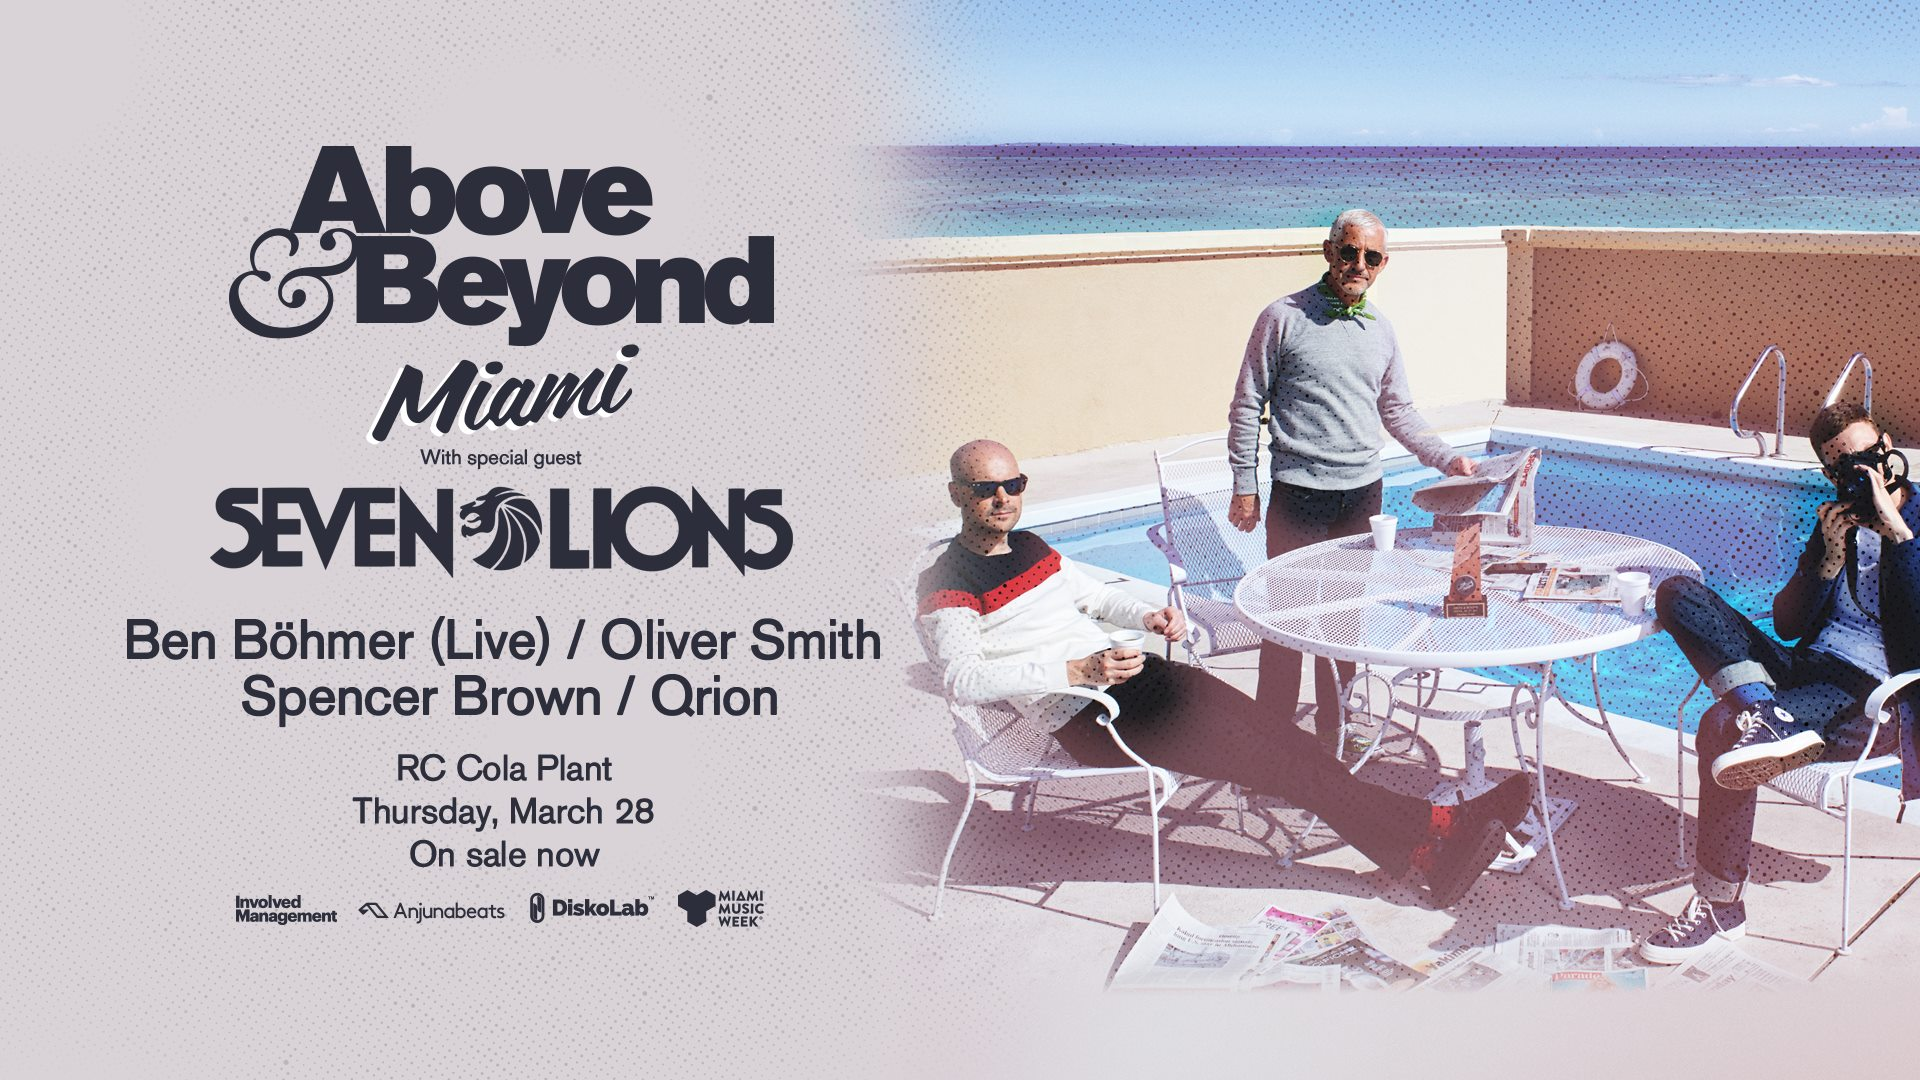 Above & Beyond Miami 2019 Lineup